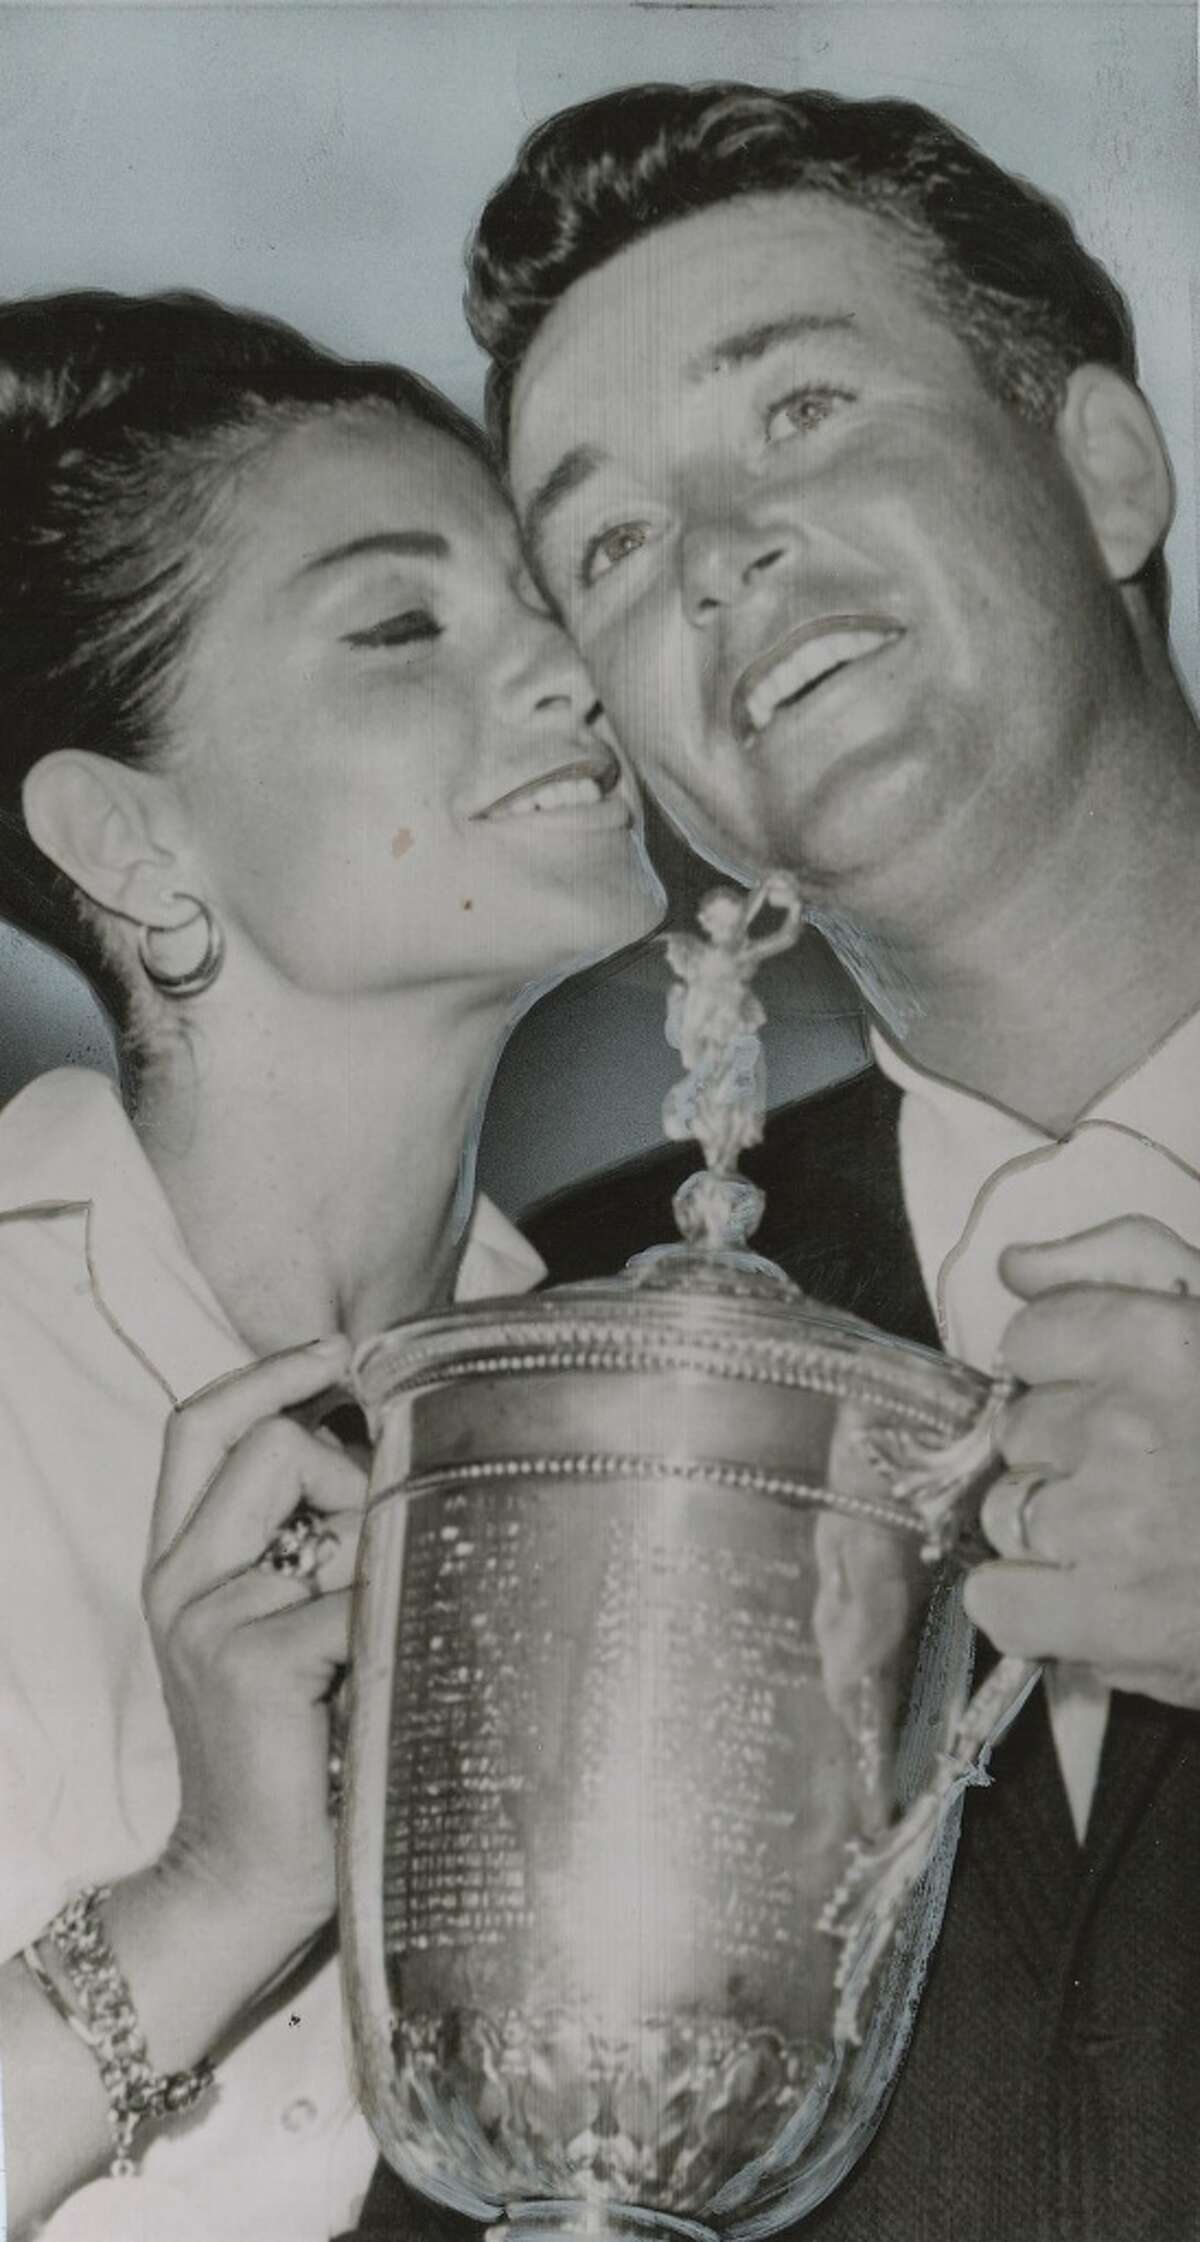 Ken Venturi, winner of the National Open gets a big kiss from his wife, Conni, as he accepts the title-holder's silver cup after a searing final round on the Washington Congressional Country Club course on June 21, 1964.